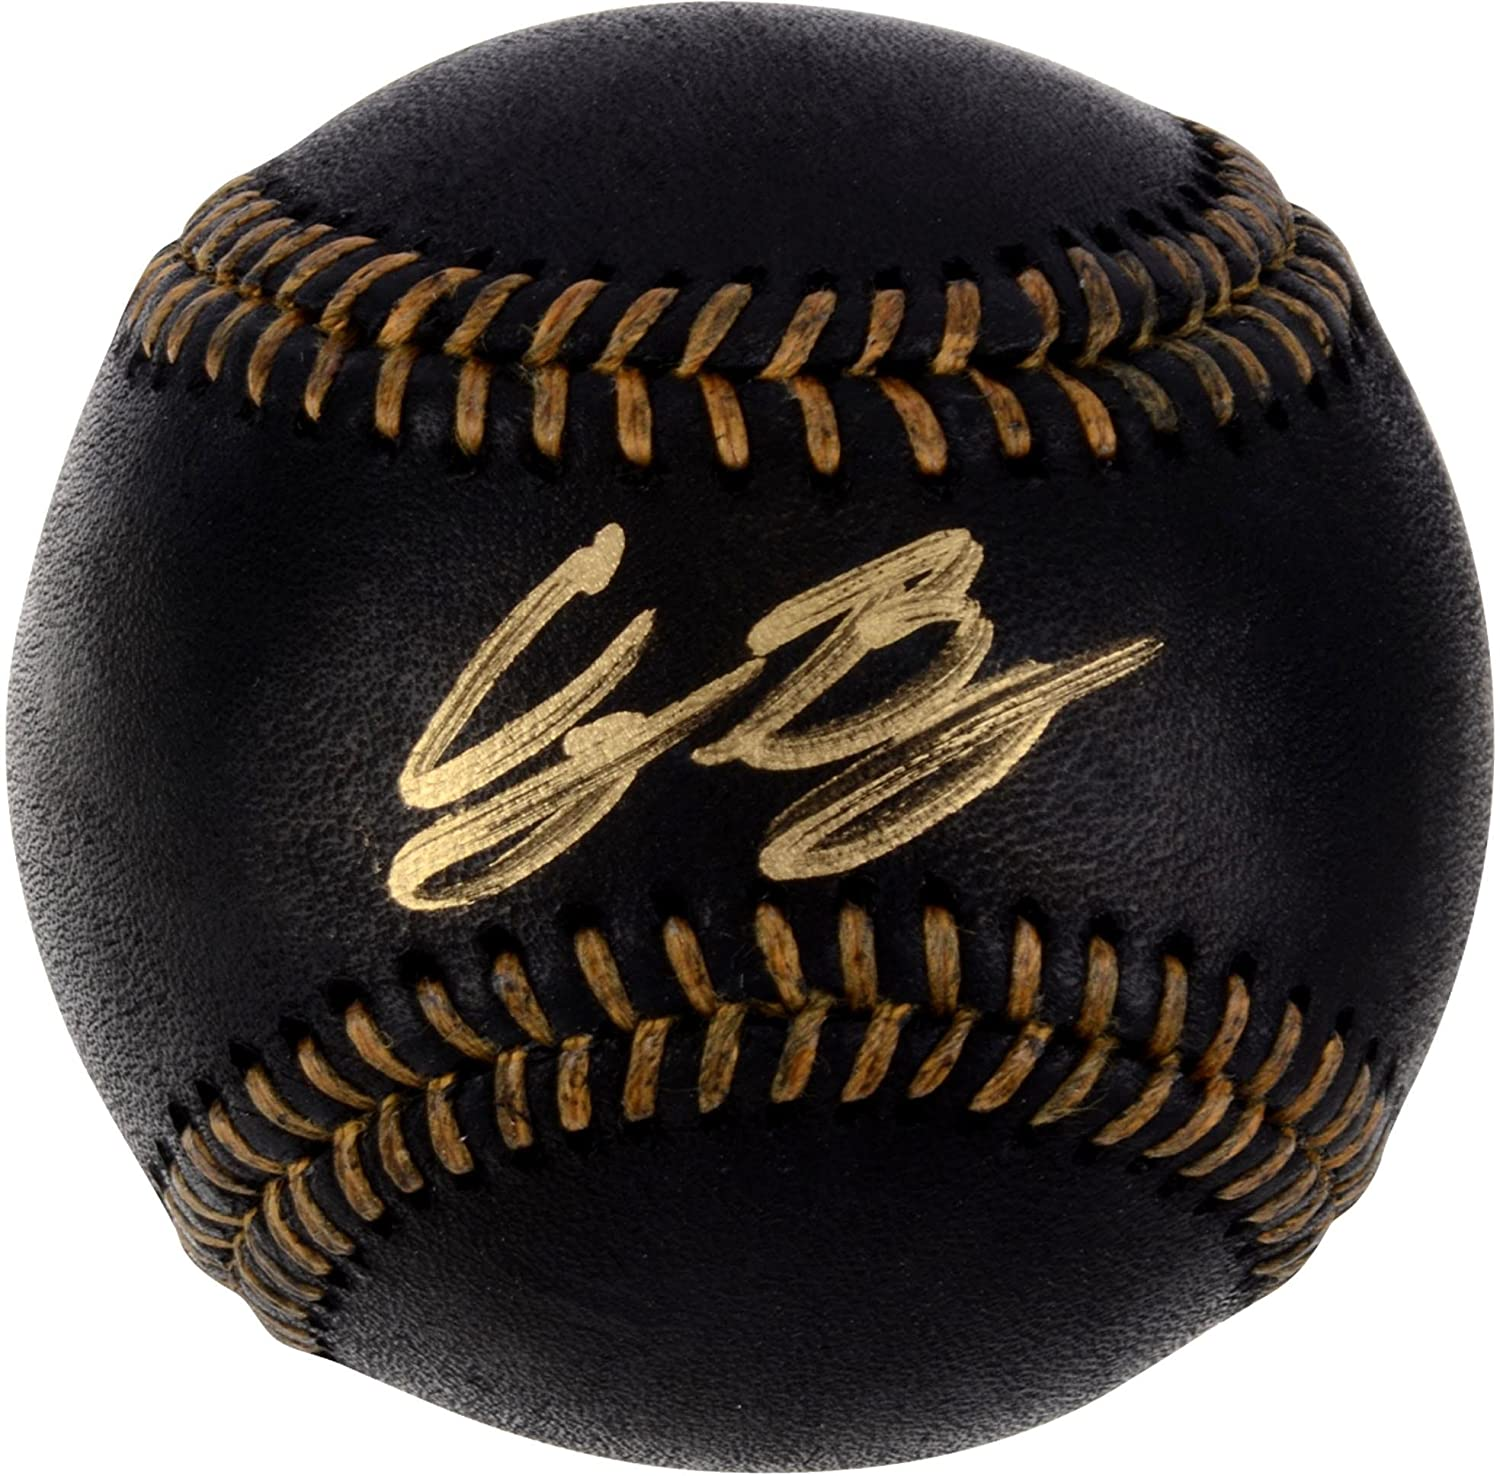 Cody Bellinger Los Angeles Dodgers Autographed Black Leather Baseball - Fanatics Authentic Certified